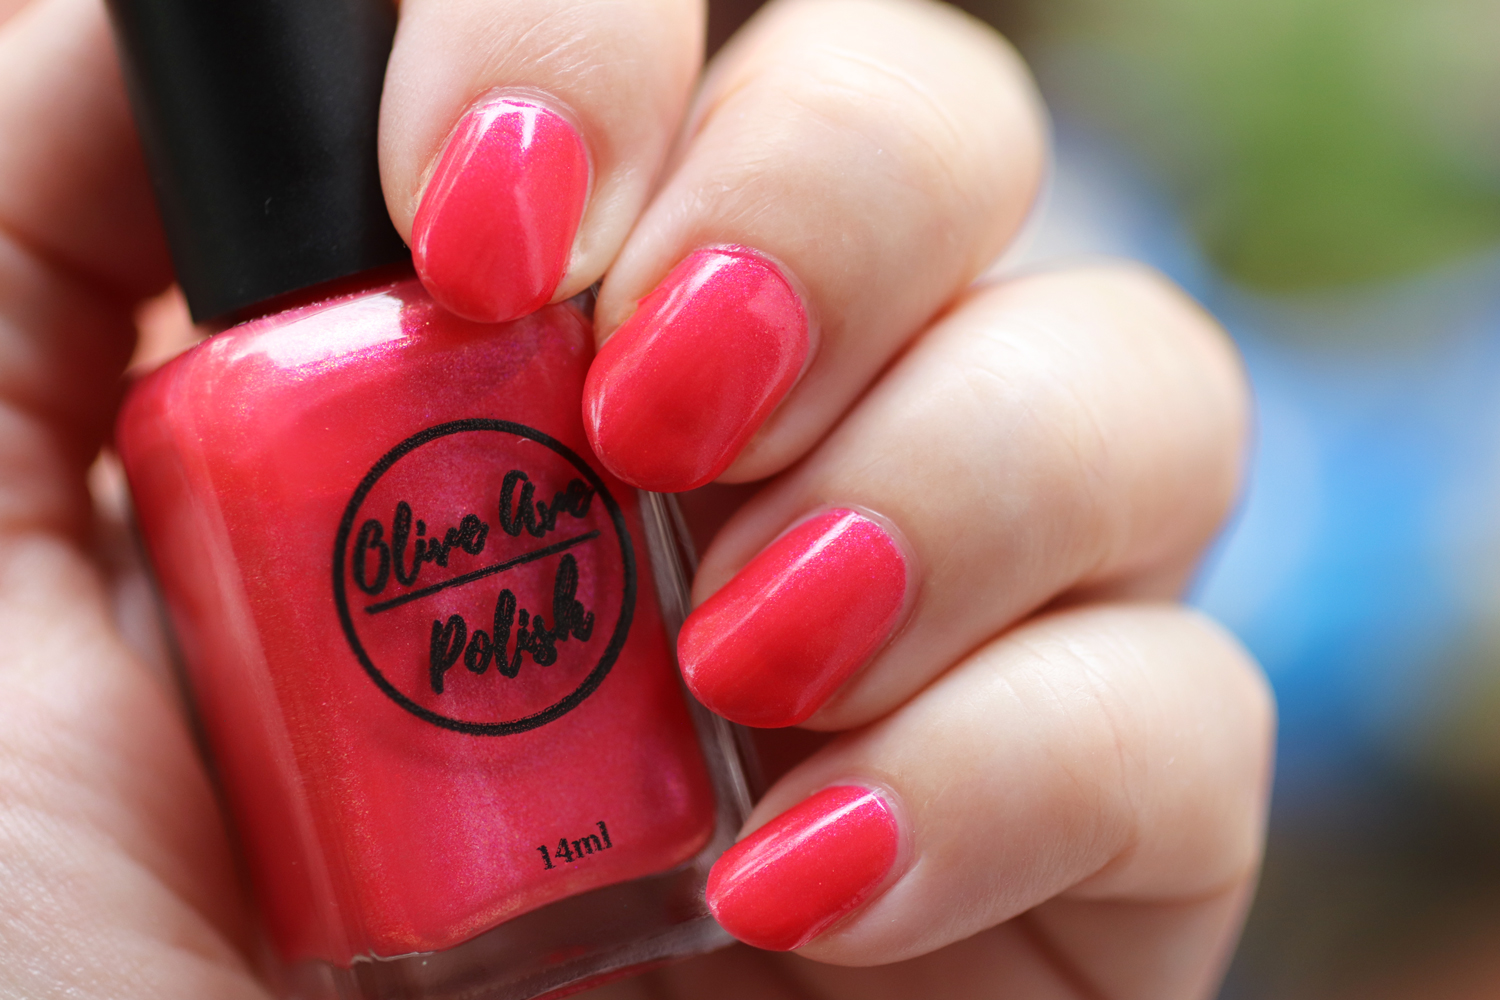 Pixy shimmery coral nail polish by Olive Ave